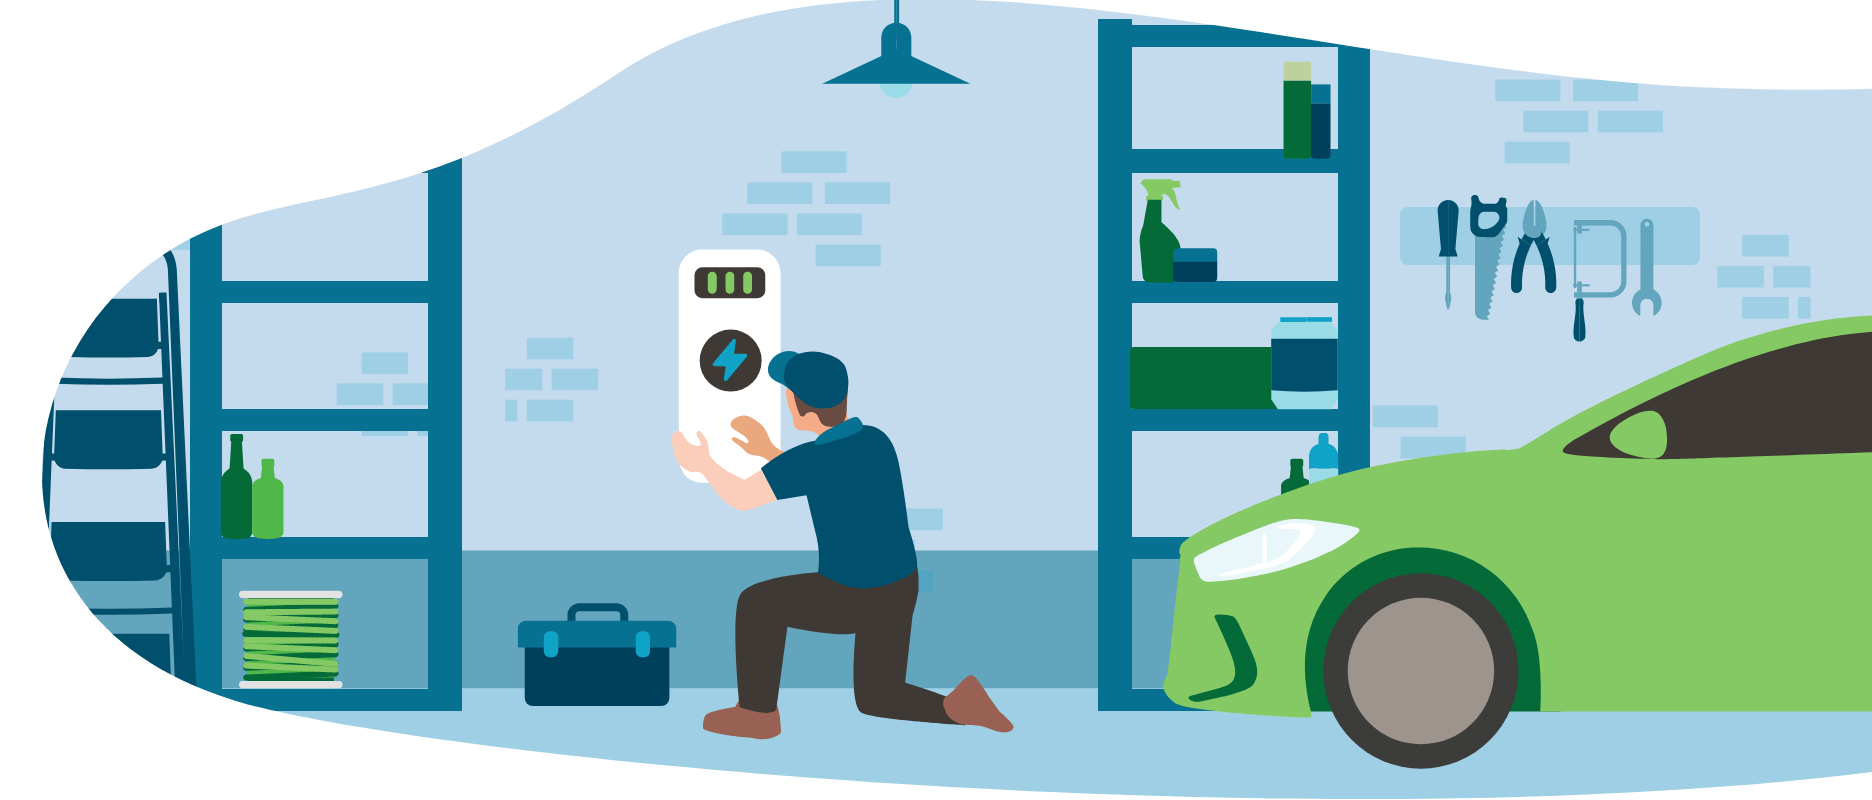 installing an EV charger at home